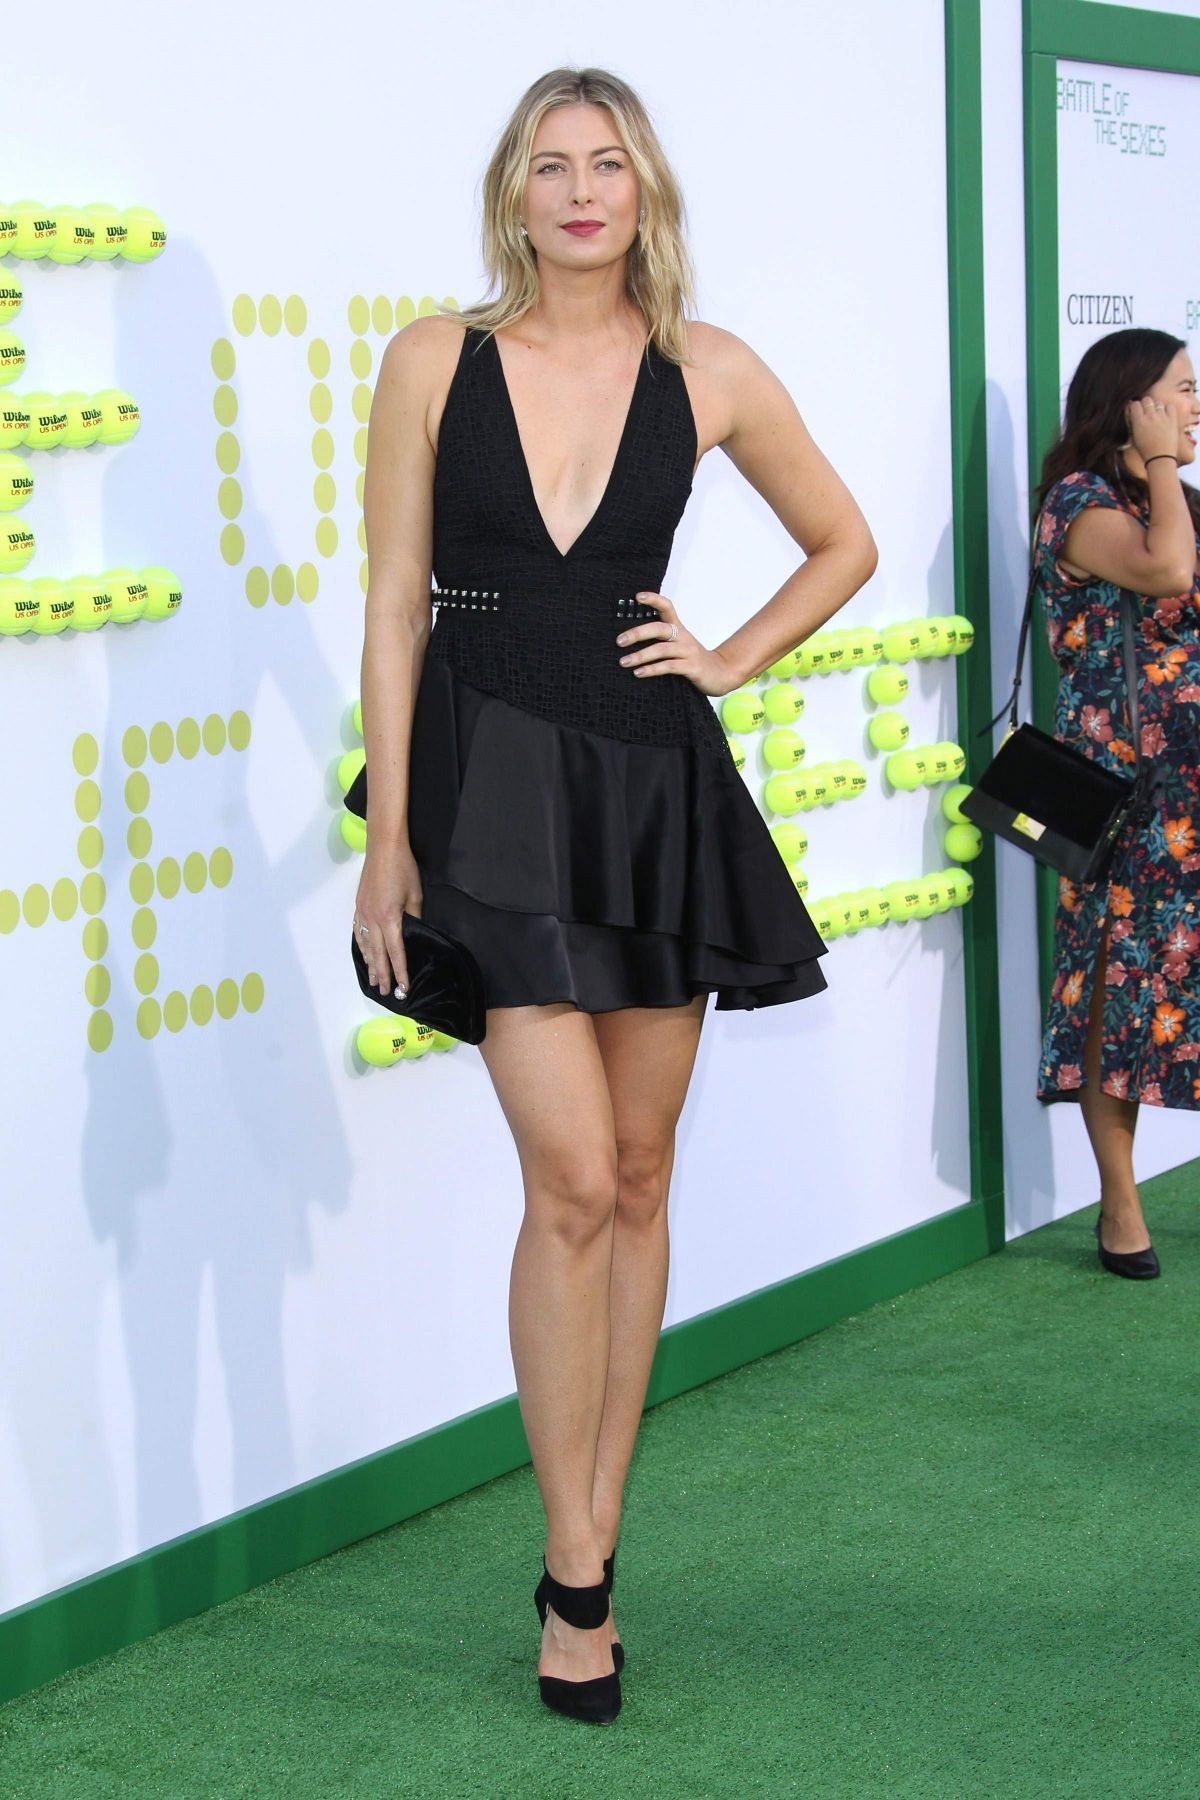 maria-sharapova-at-battle-of-the-sexes-premiere-in-los-angeles-09-16-2017 2f79df6c7ad